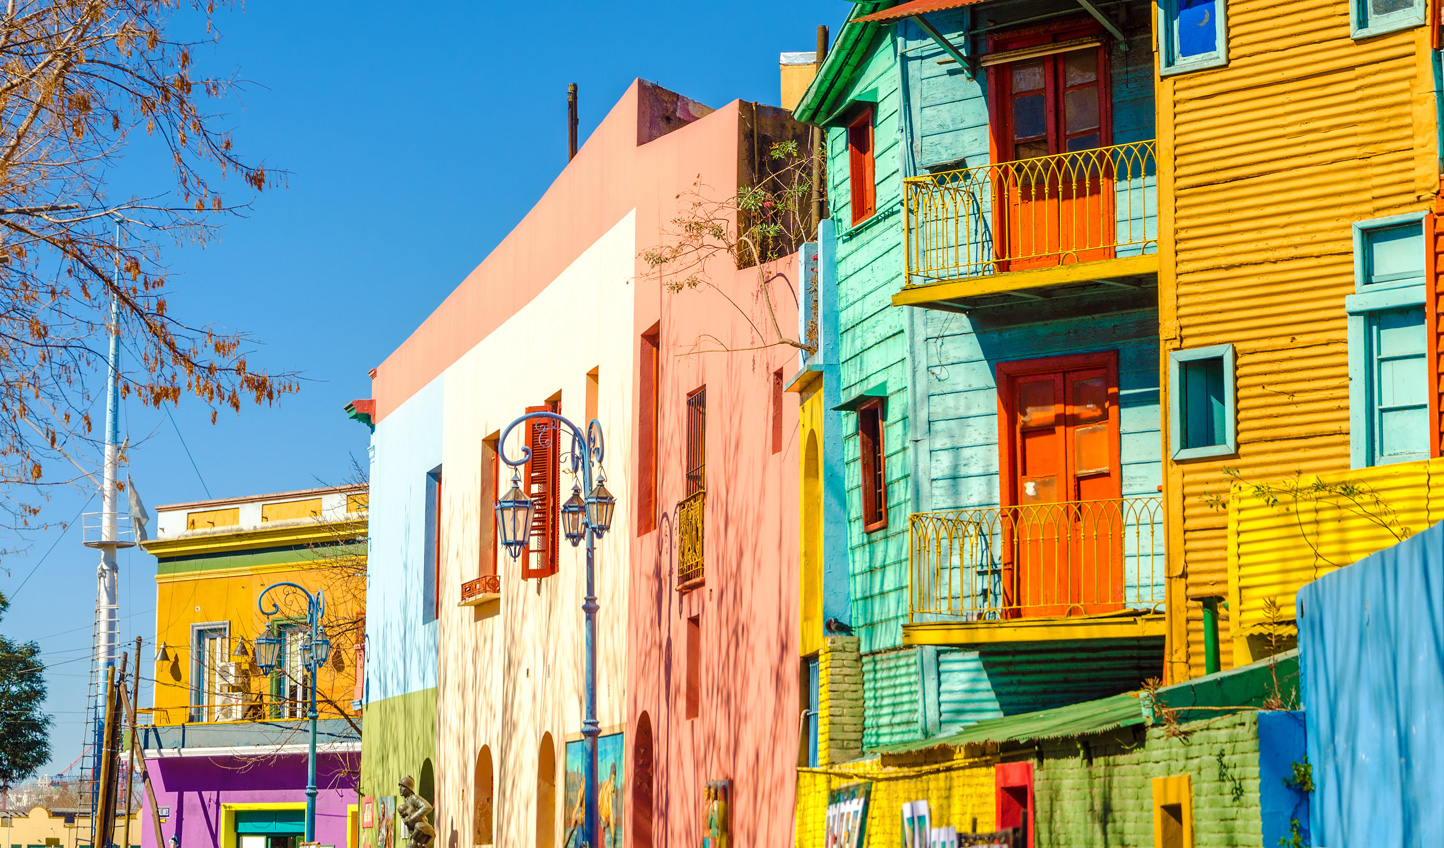 Visit the colourful street of El Caminito